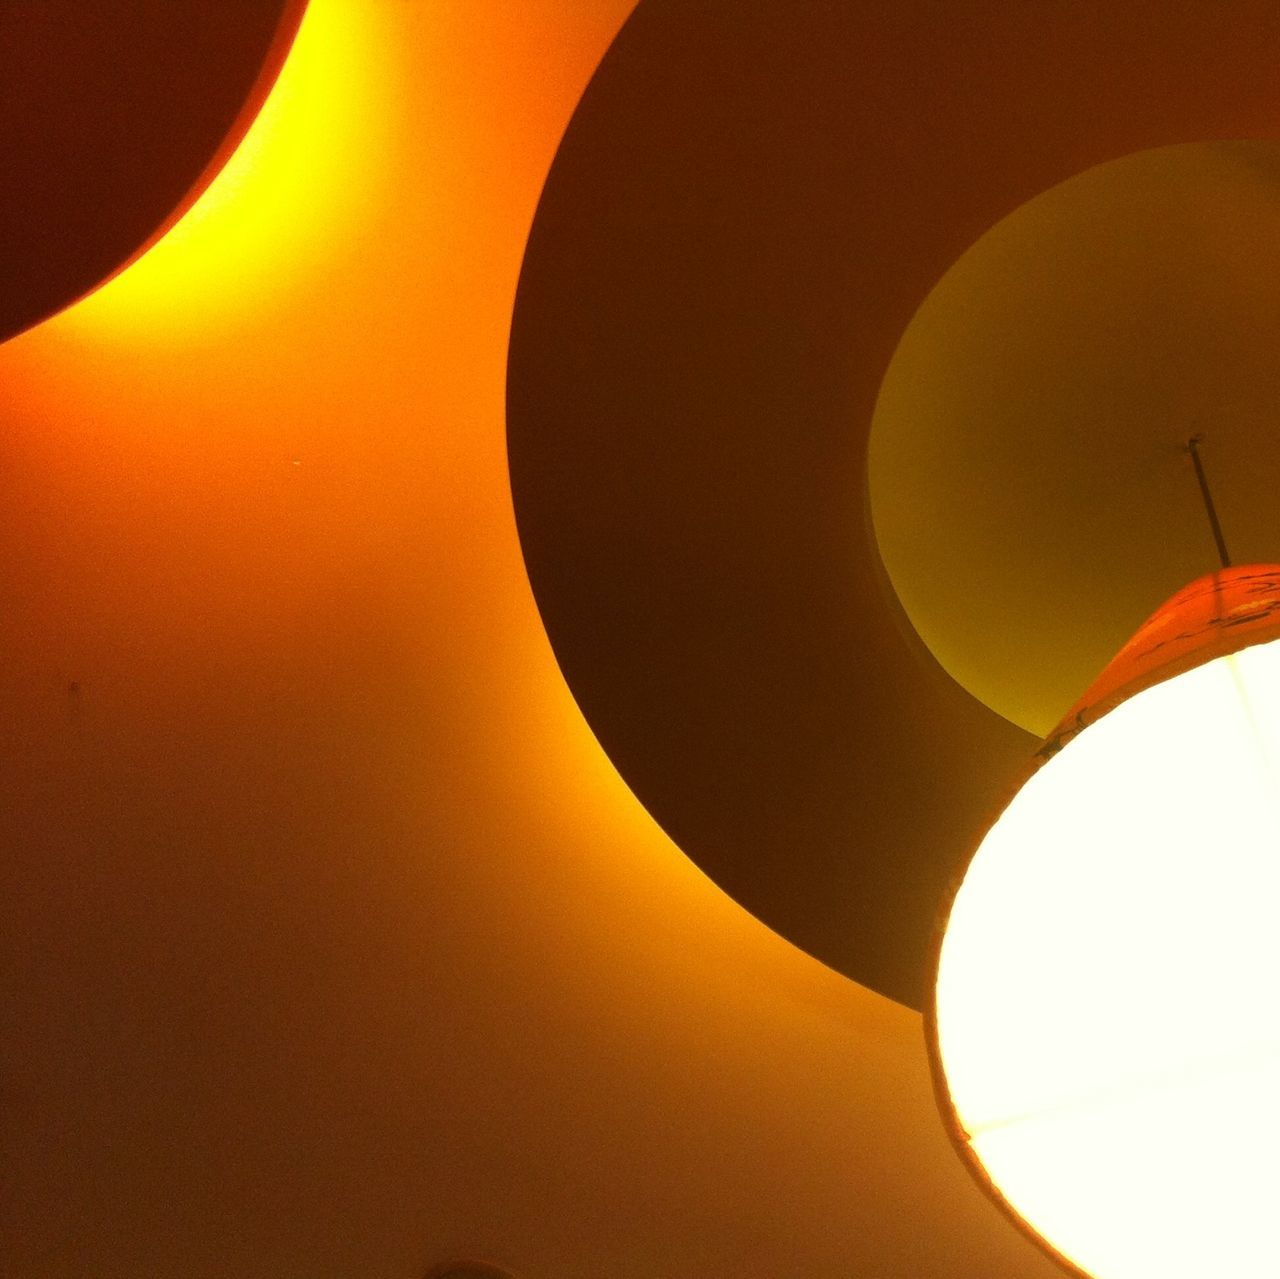 Low Angle View Of Illuminated Electric Lamps At Home